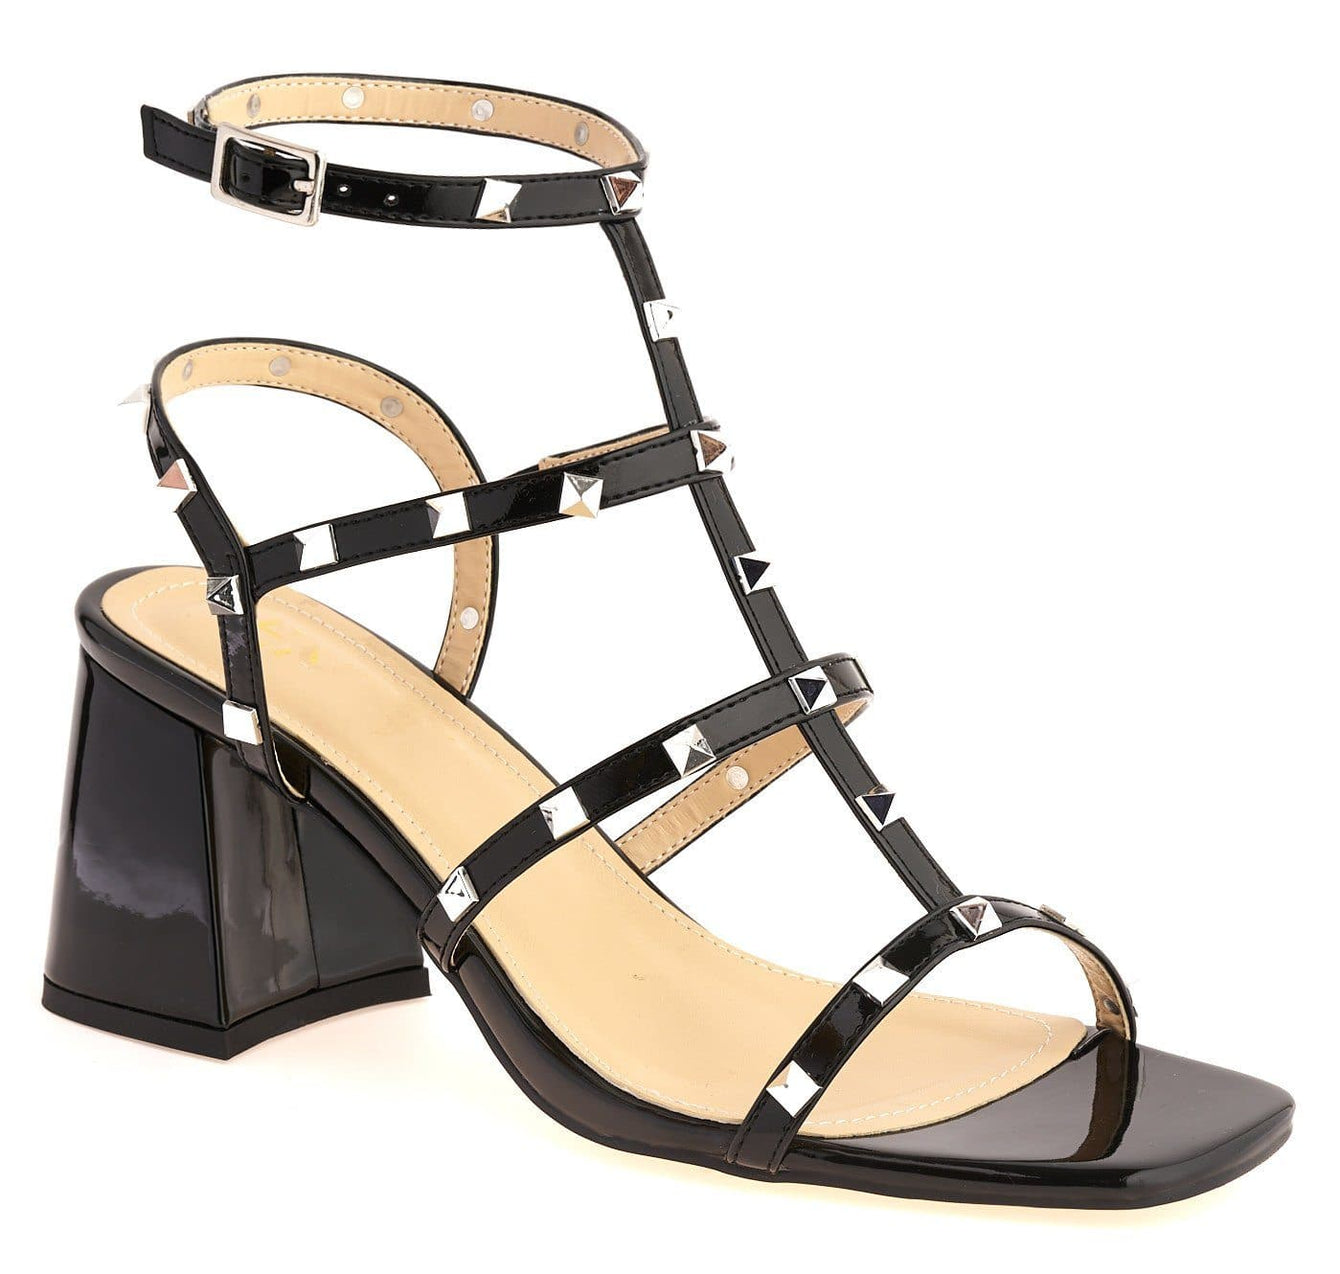 Pitter Studded Strappy Block Heel Sandal in Black Patent